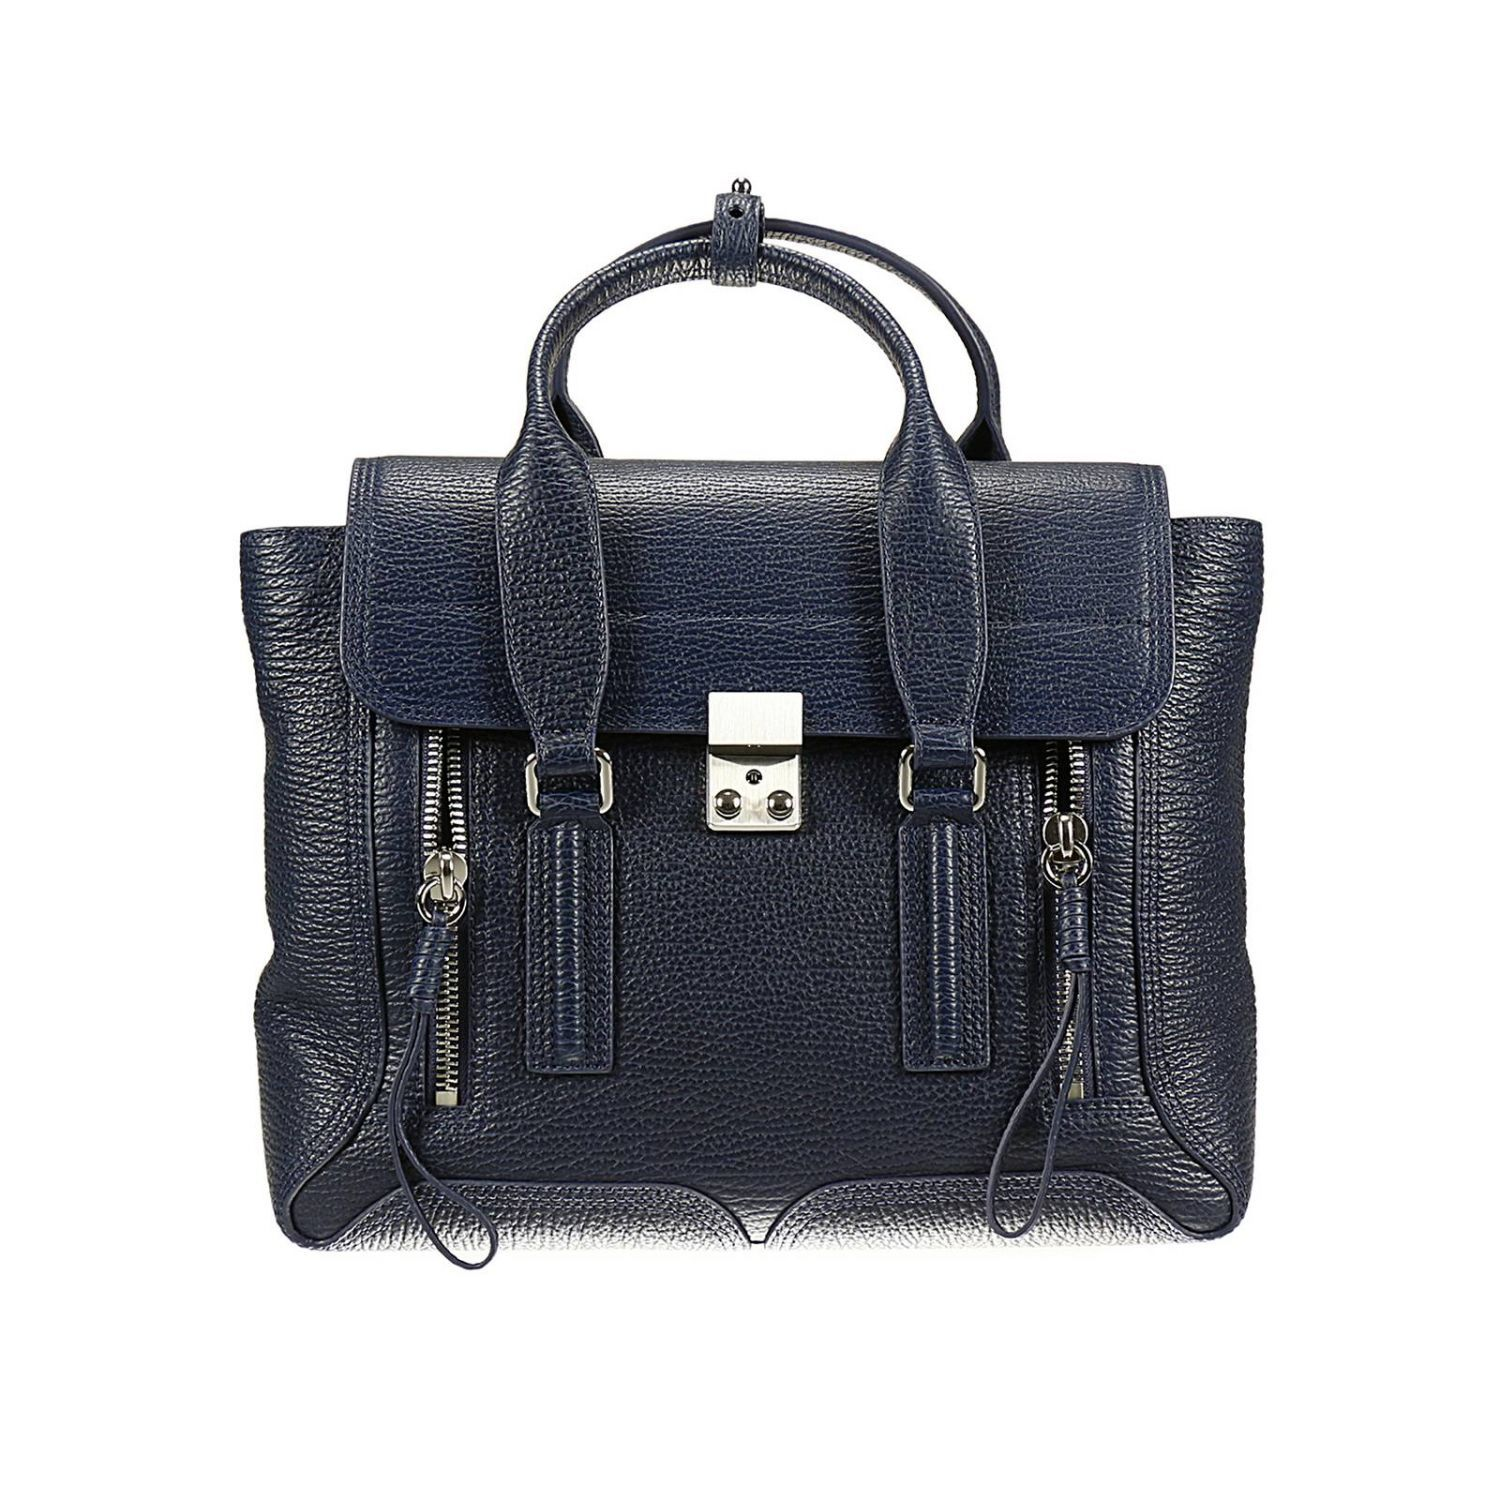 Handbag Handbag Women 3.1 Phillip Lim